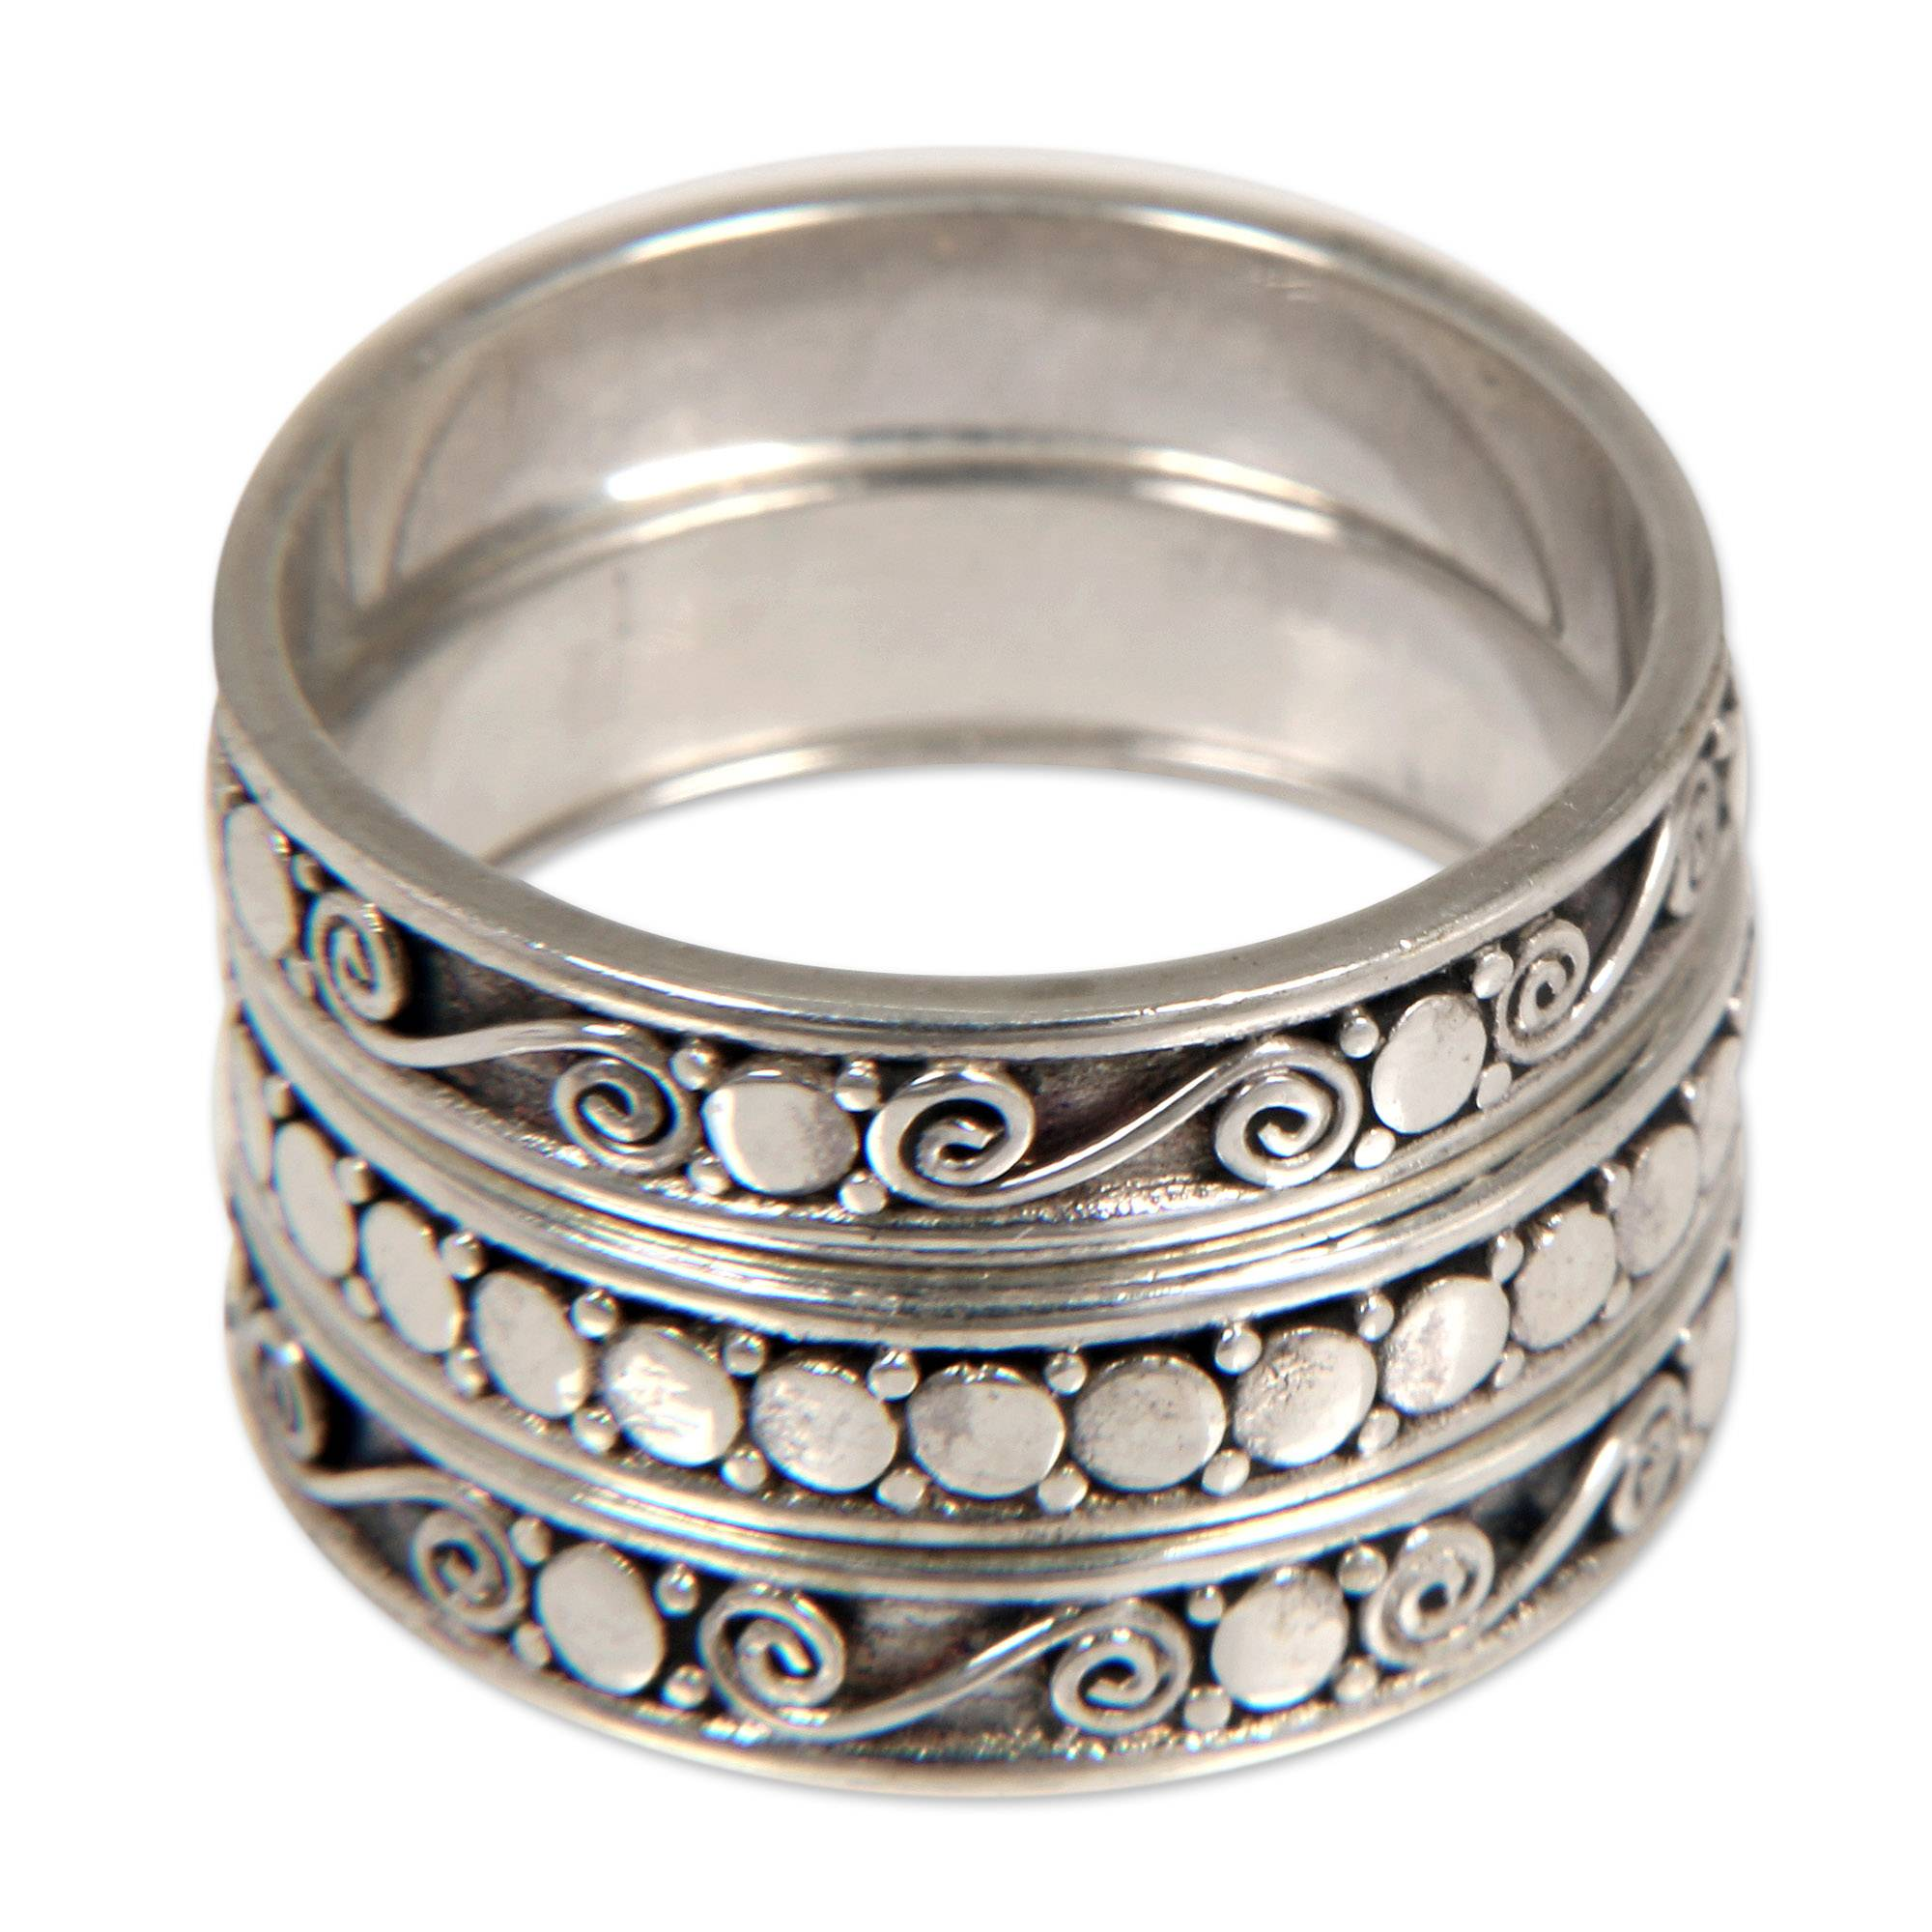 Old New Stock Set of 2 Sterling Silver Stacking Rings